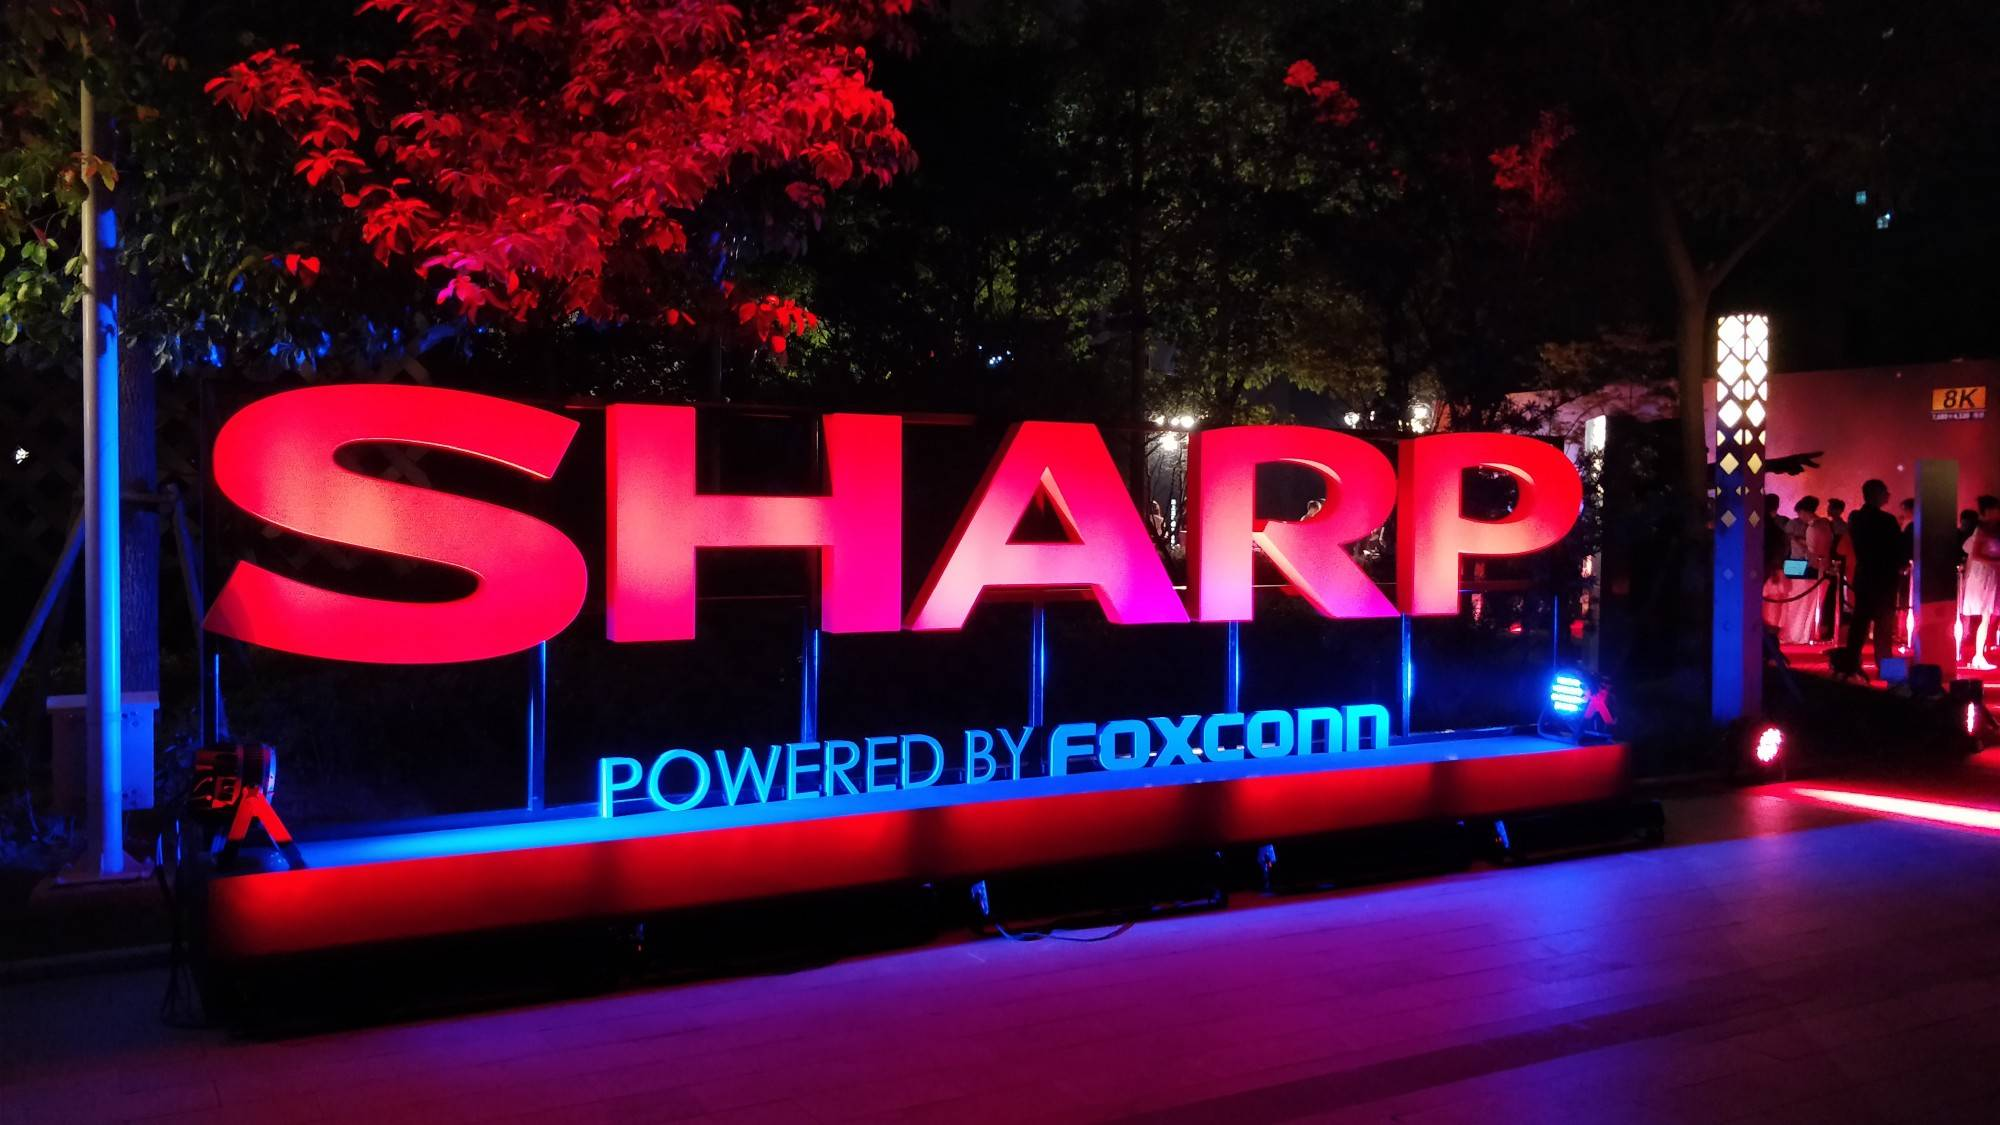 sharp powered by foxconn